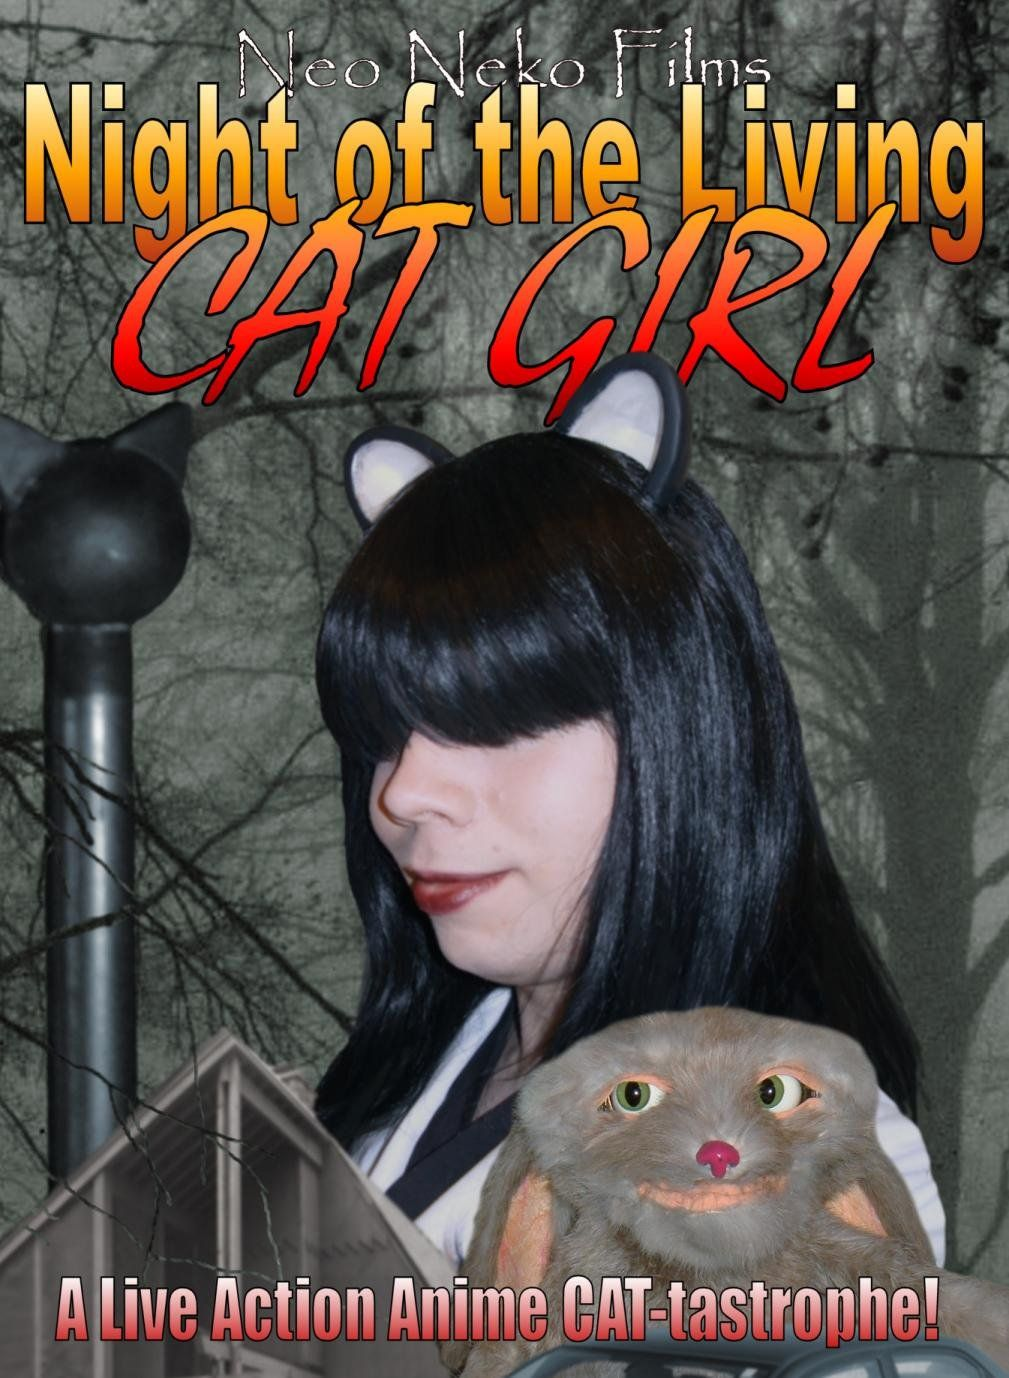 Anime Zombie Cat Girl Unlimited In 2021 Zombie Cat Anime Zombie Cat Girl